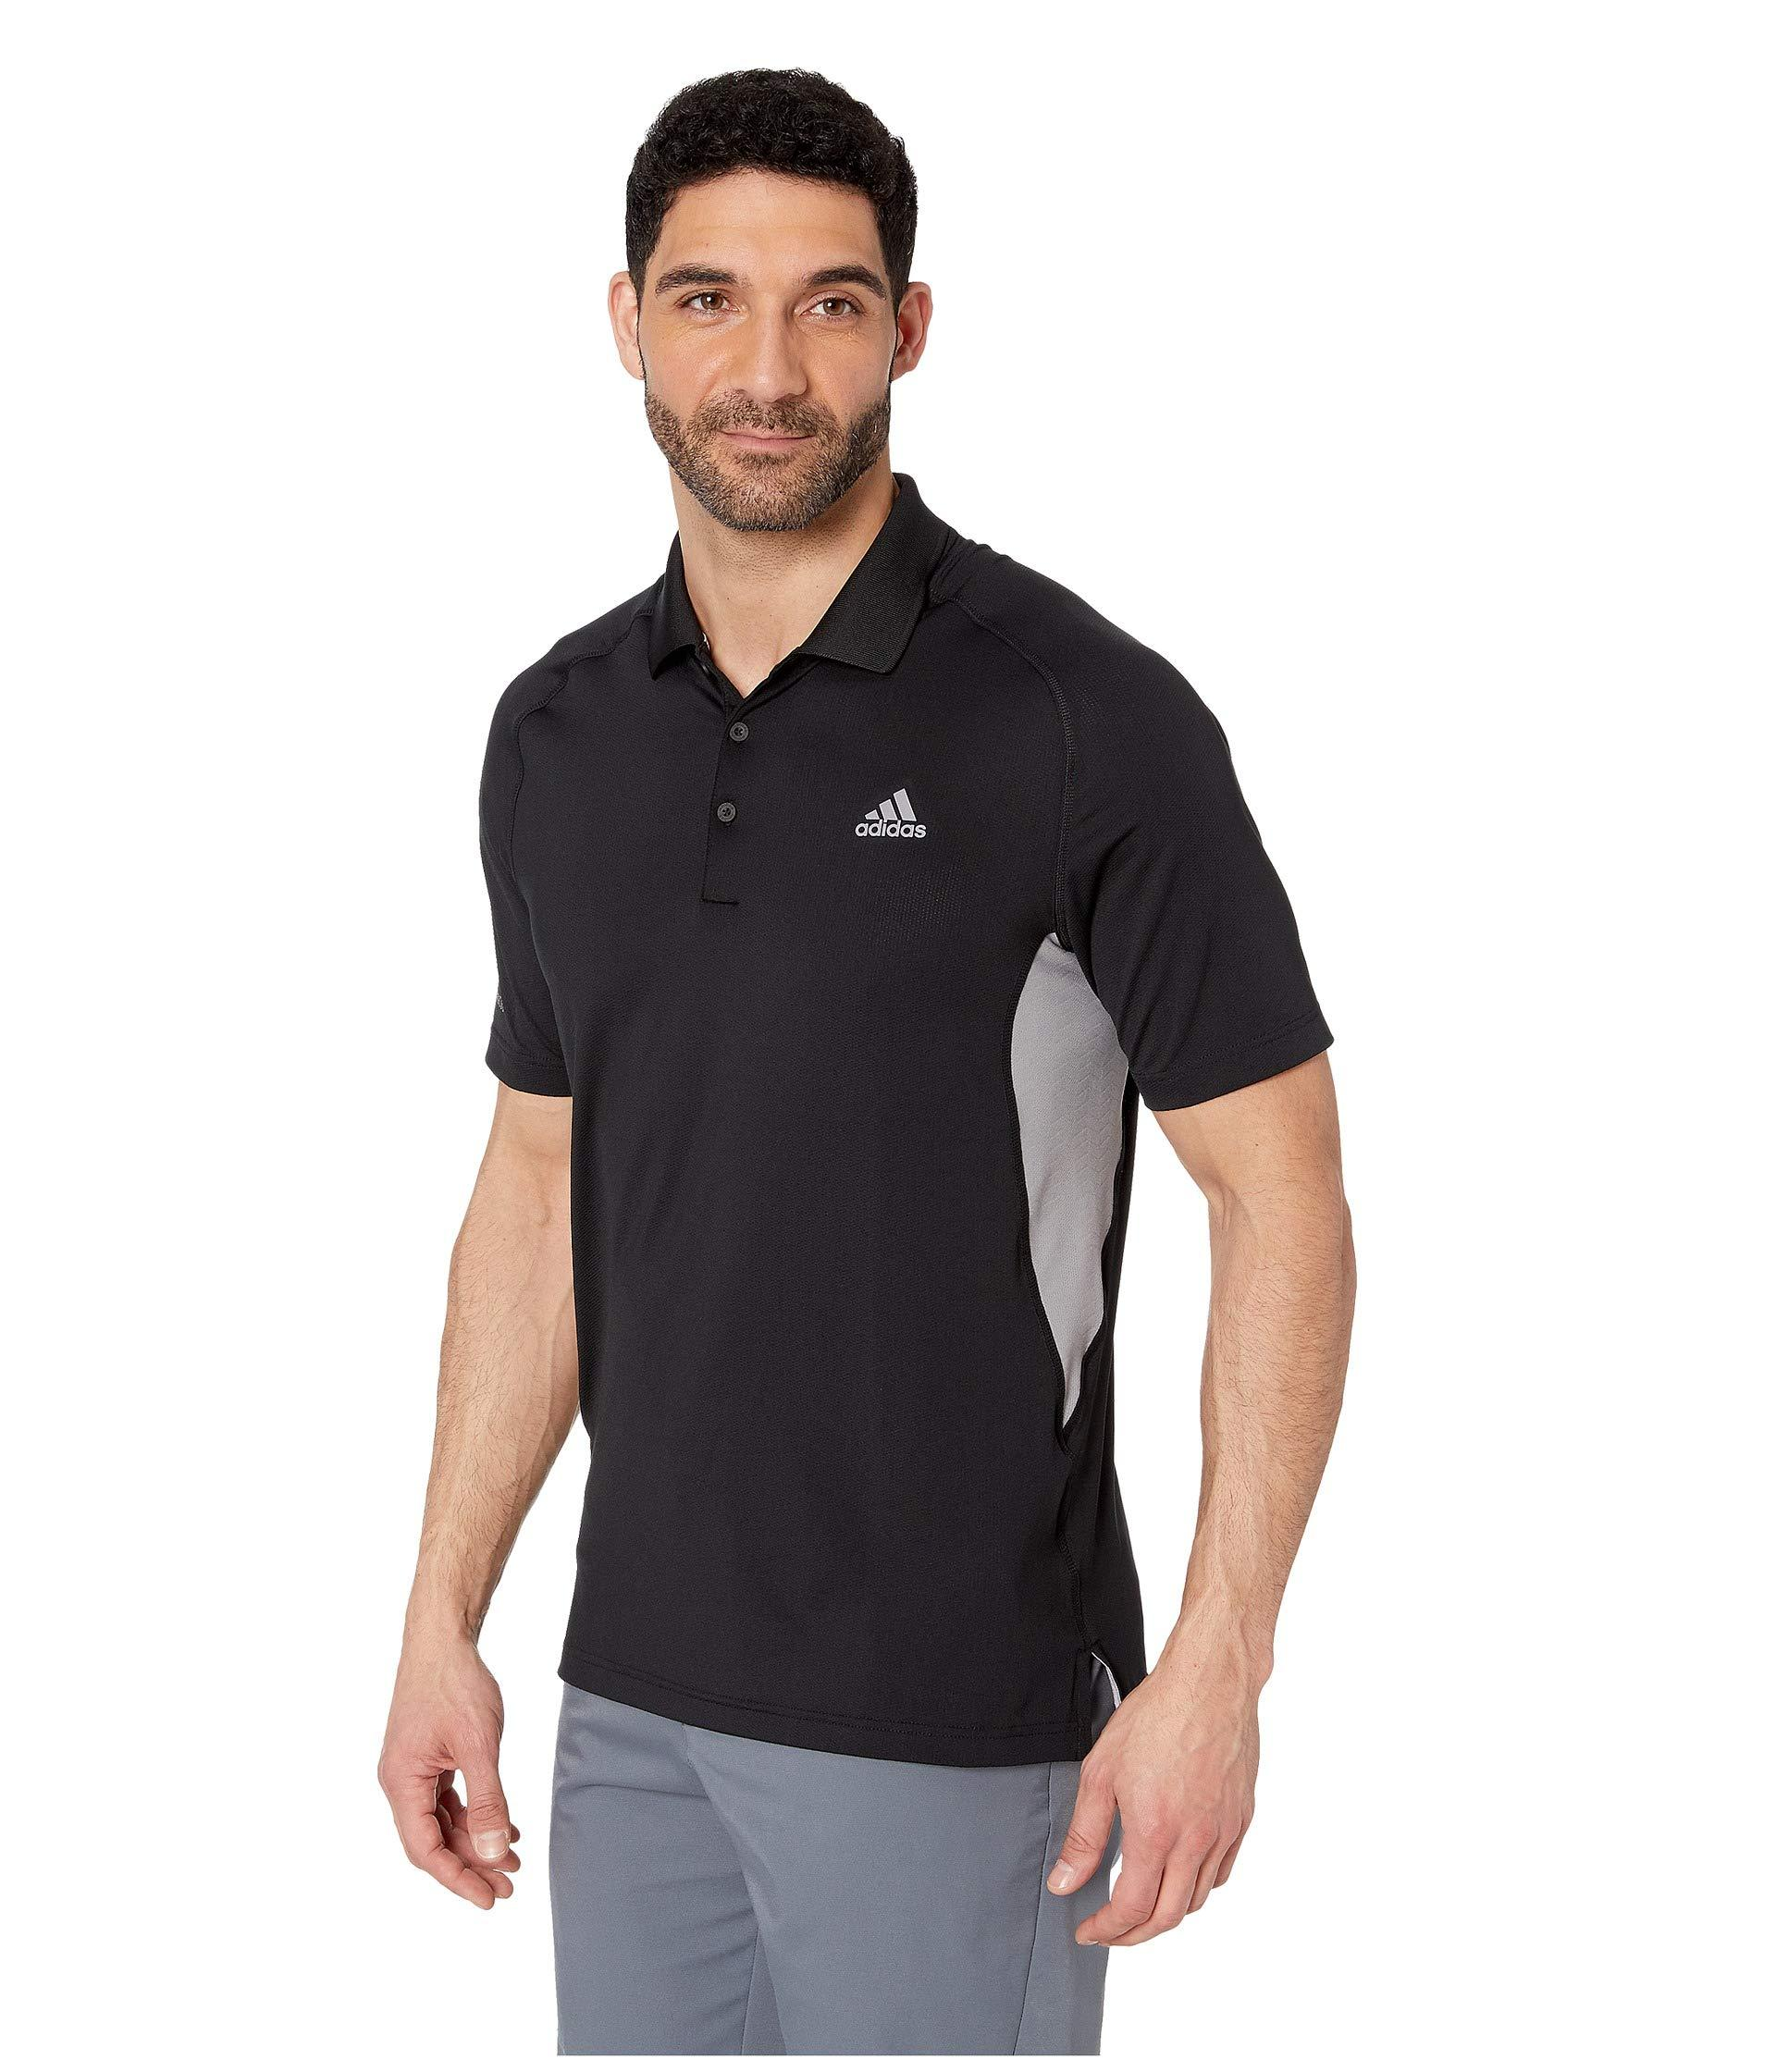 77c49c37da2f8 Lyst - adidas Originals Ultimate Climacool(r) Solid Polo (shock  Red collegiate Navy) Men s Clothing in Black for Men